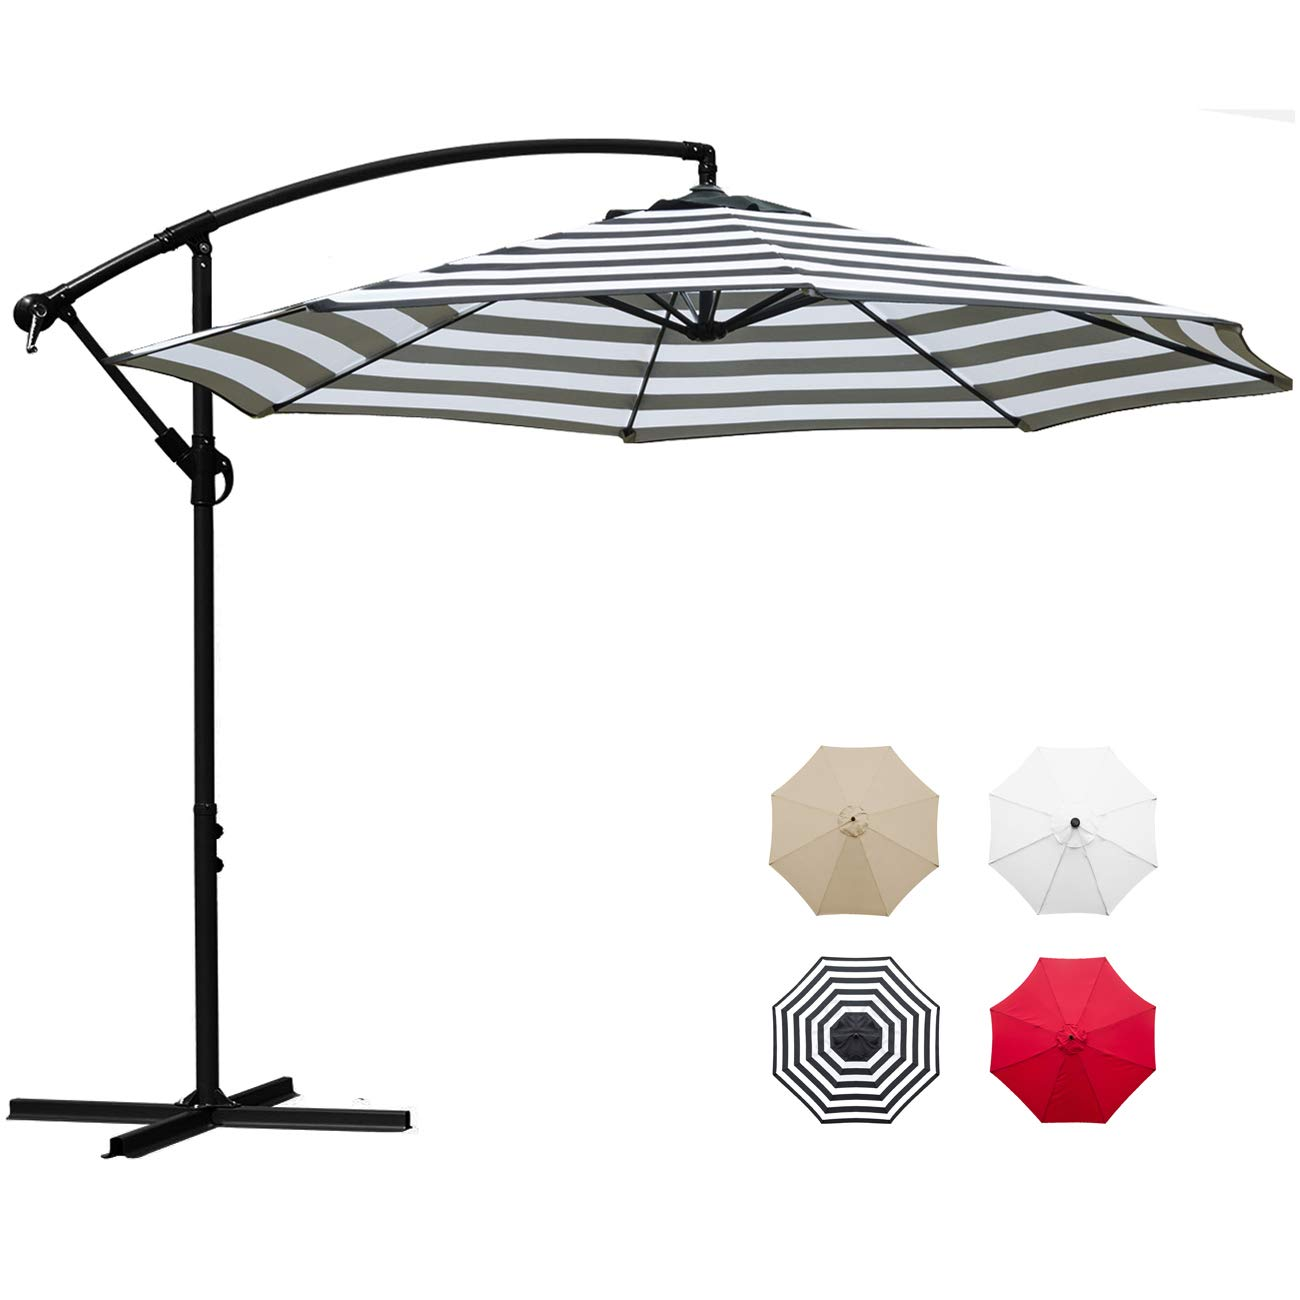 Sunnyglade 10' Outdoor Adjustable Offset Cantilever Hanging Patio Umbrella (Black and White) by Sunnyglade (Image #1)